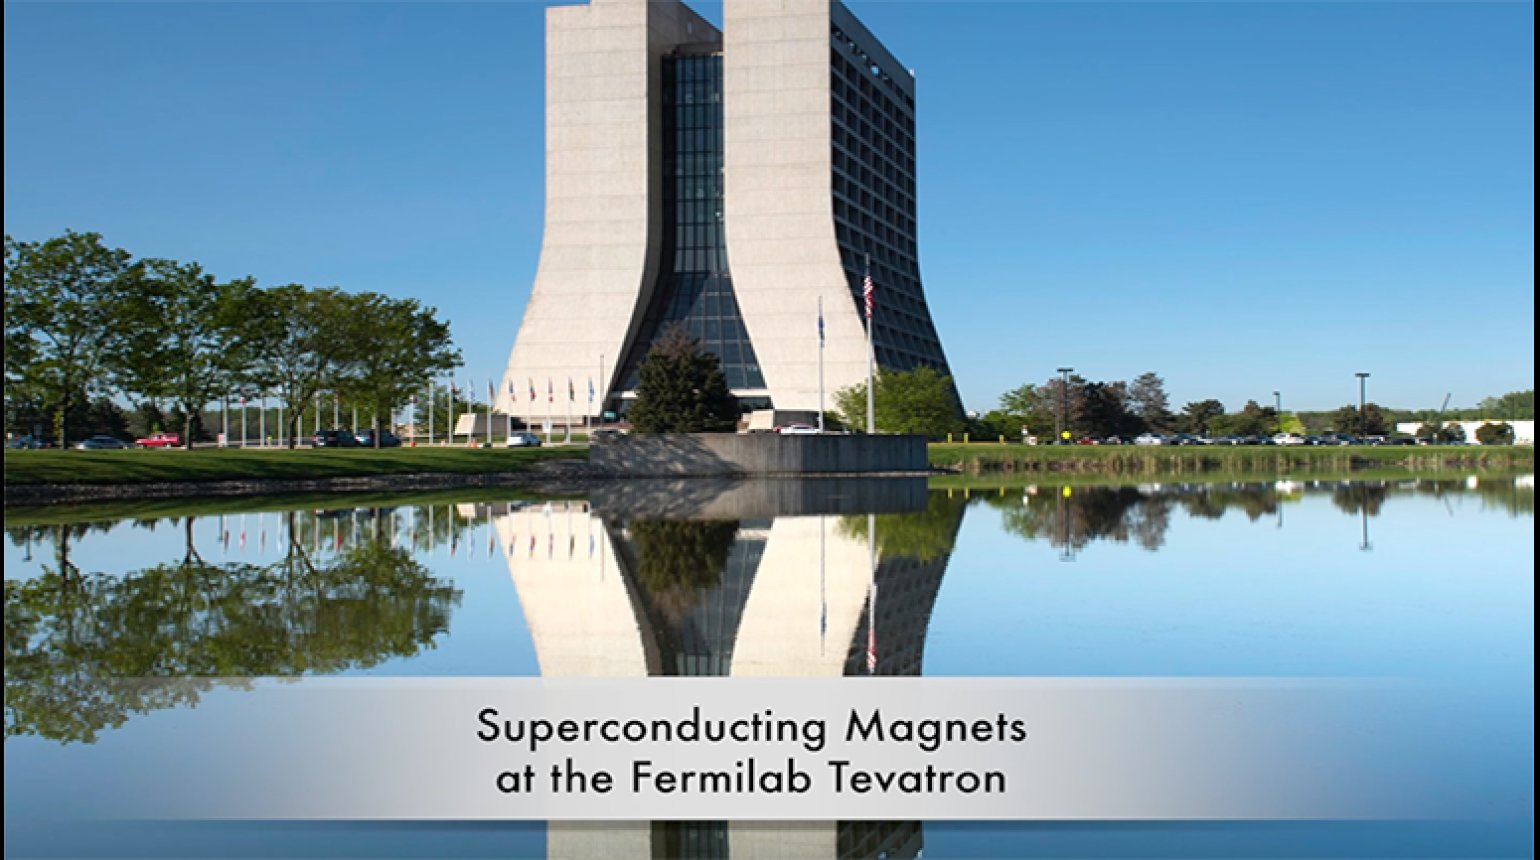 Super conducting Magnets at Fermilab Tevatron